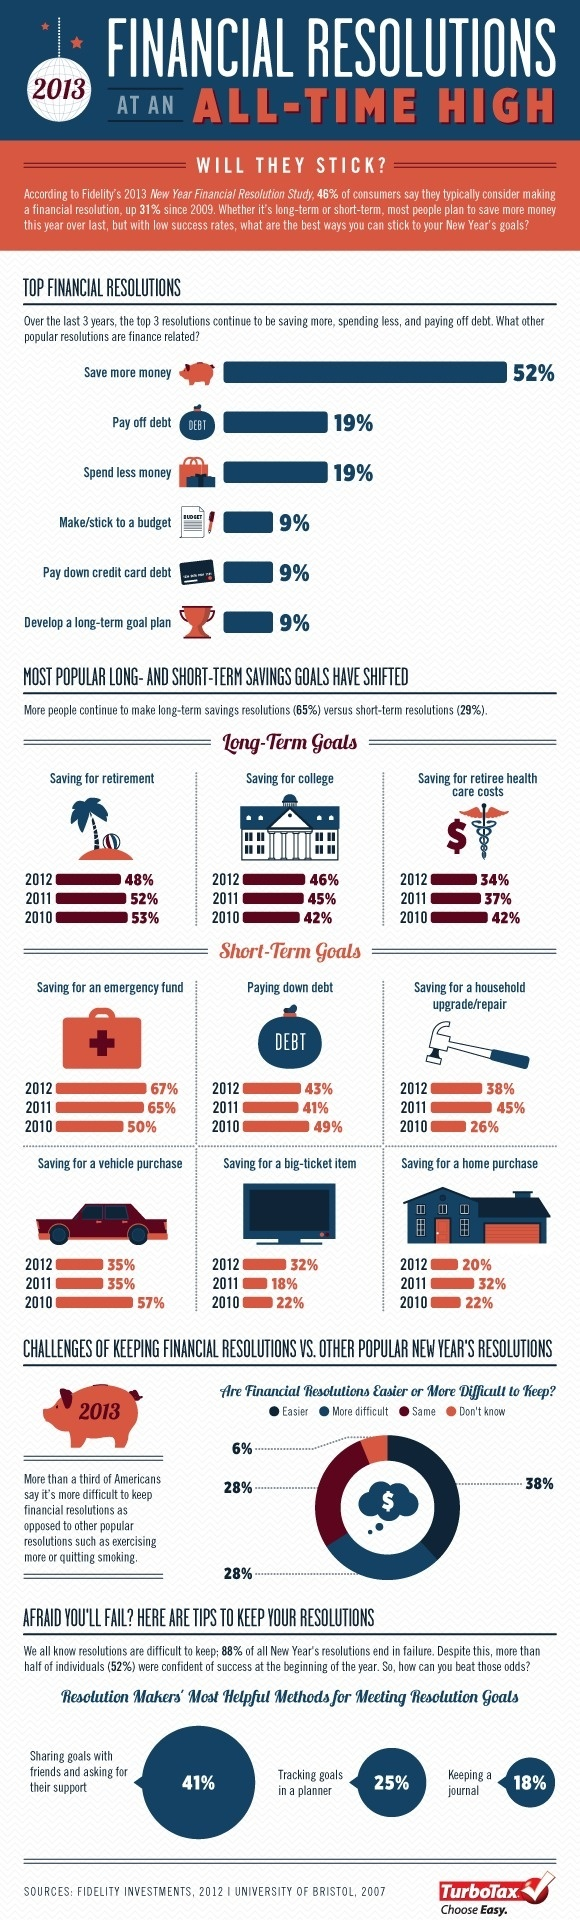 New Year's Financial Resolutions at an All Time High[Infographic] | Tax Break: The TurboTax Blog #infographics #years #finance #resolution #new